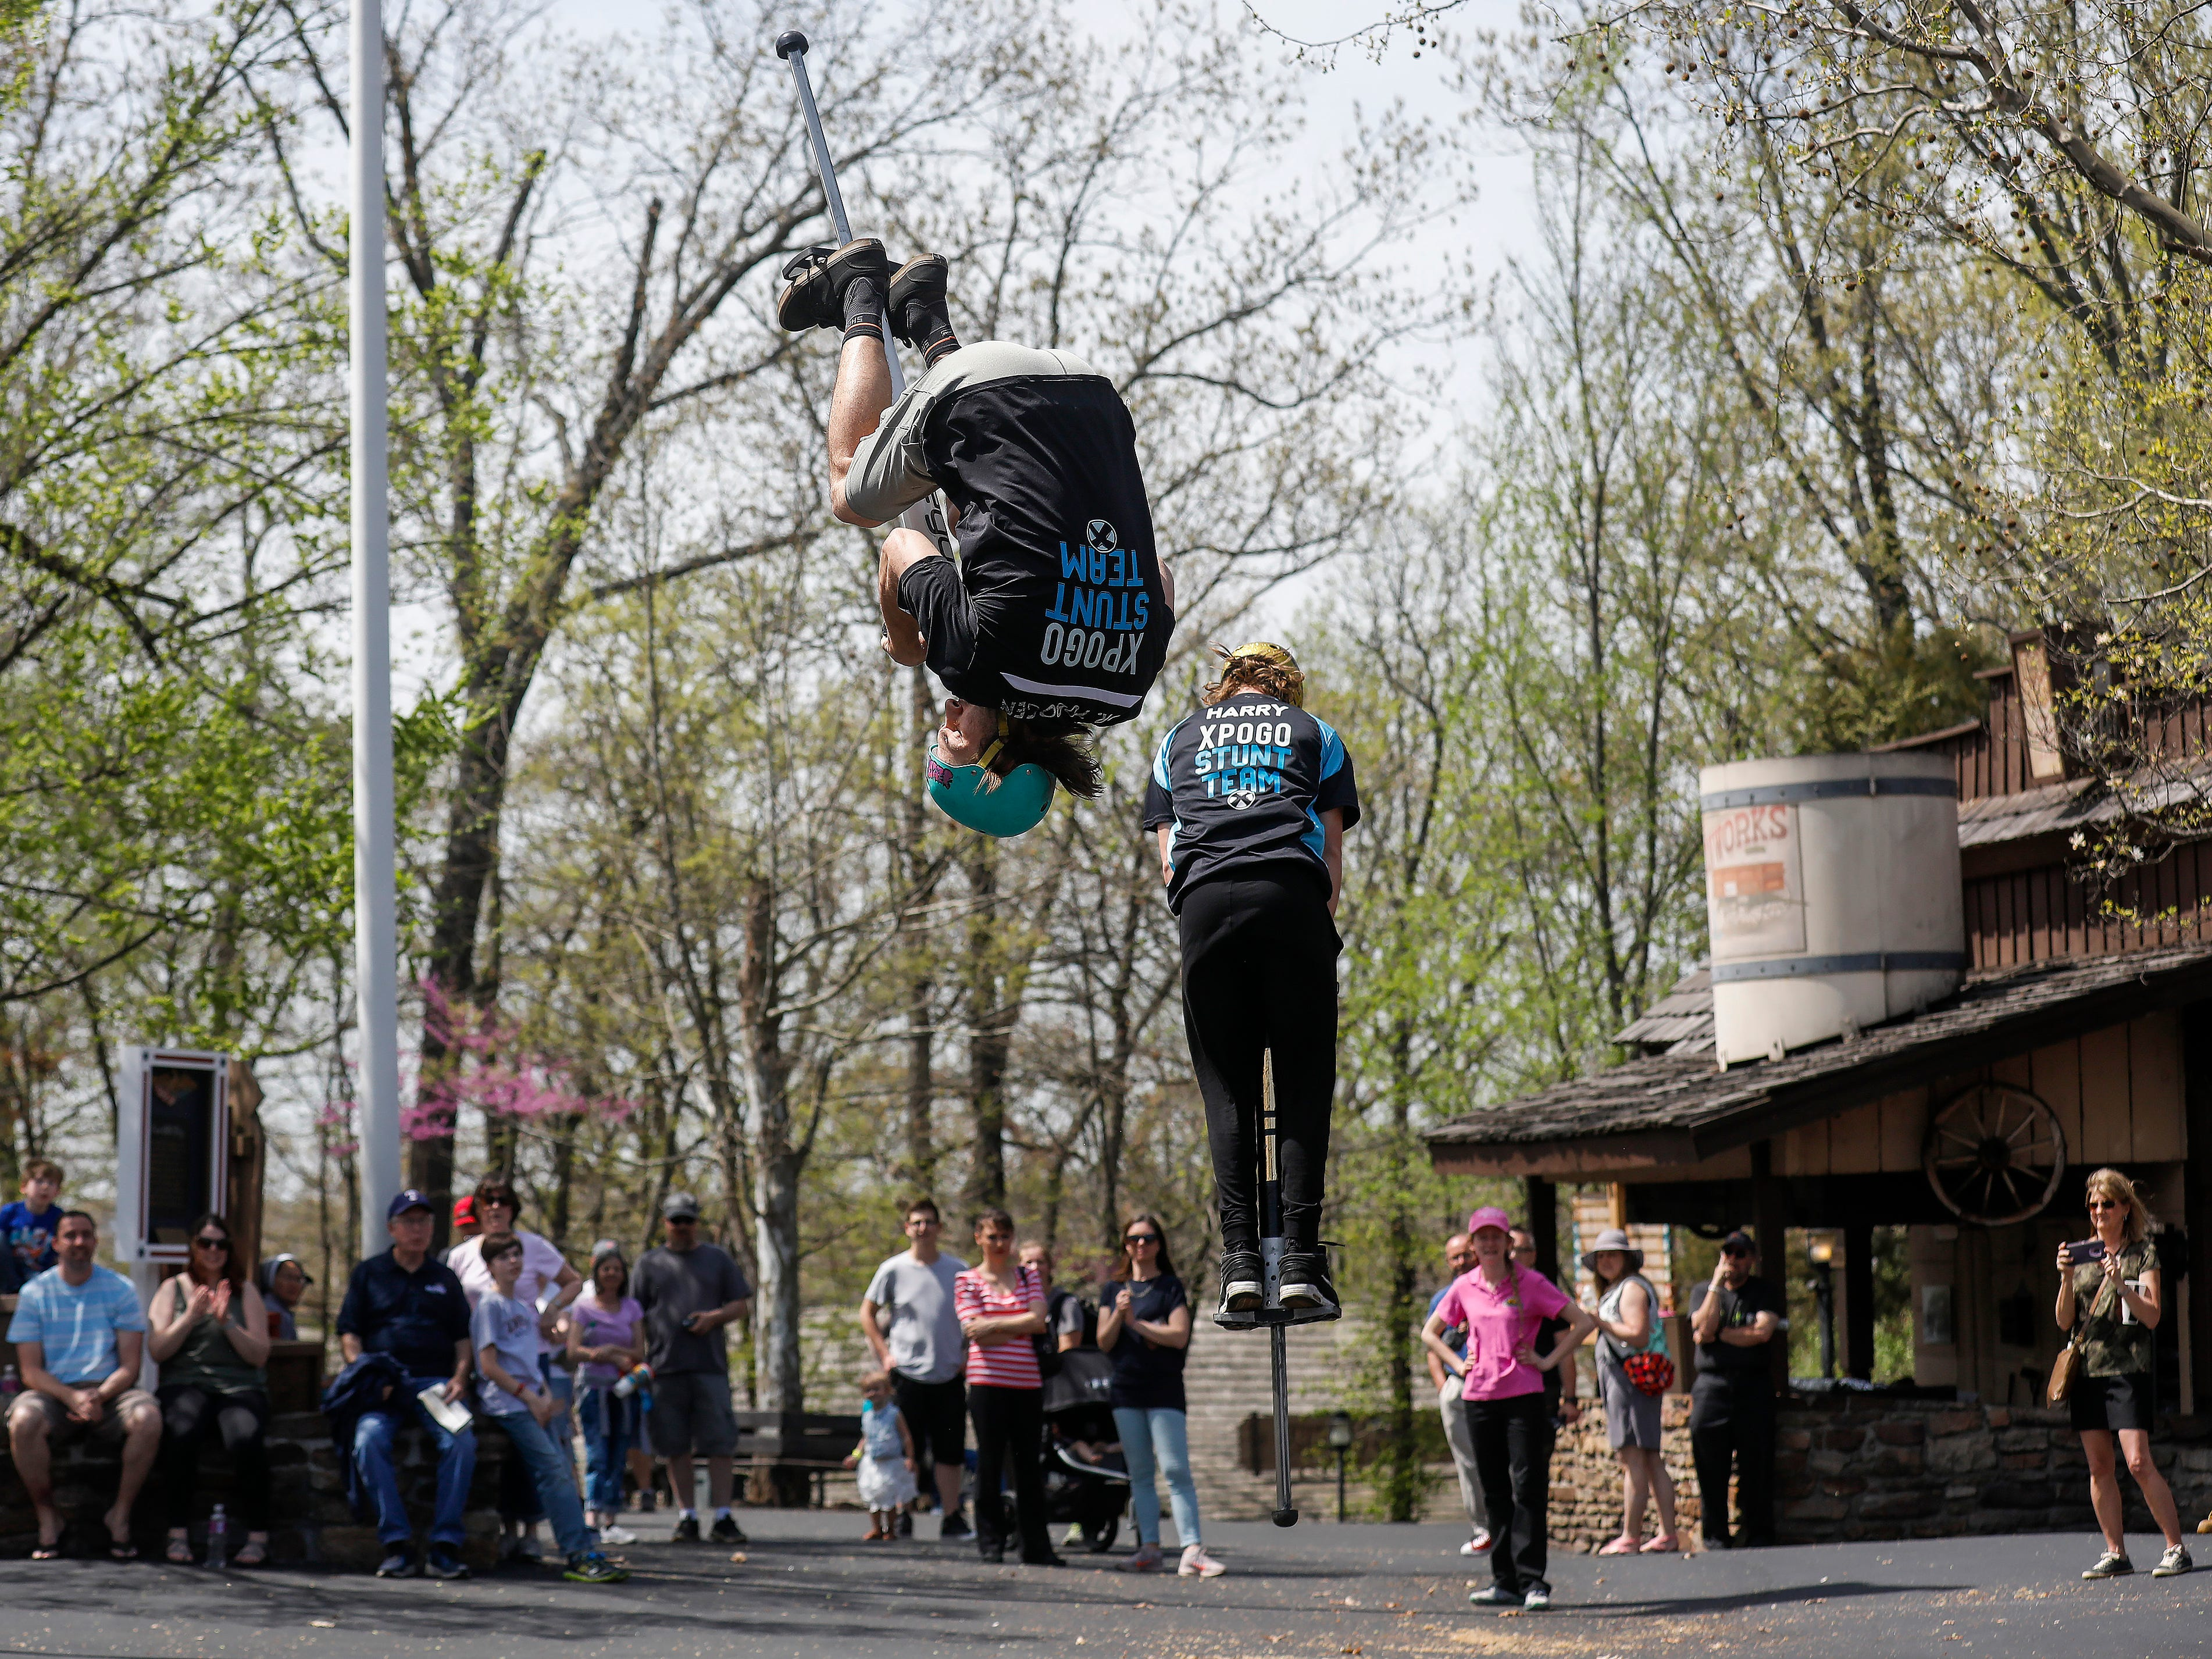 Russ Kaus, left, and Harry White, members of the X-Pogo Stunt Team, perform as a part of Festival of Wonder on Wednesday, April 10, 2019 at Silver Dollar City. The event runs Wednesdays through Sundays, April 10-28.